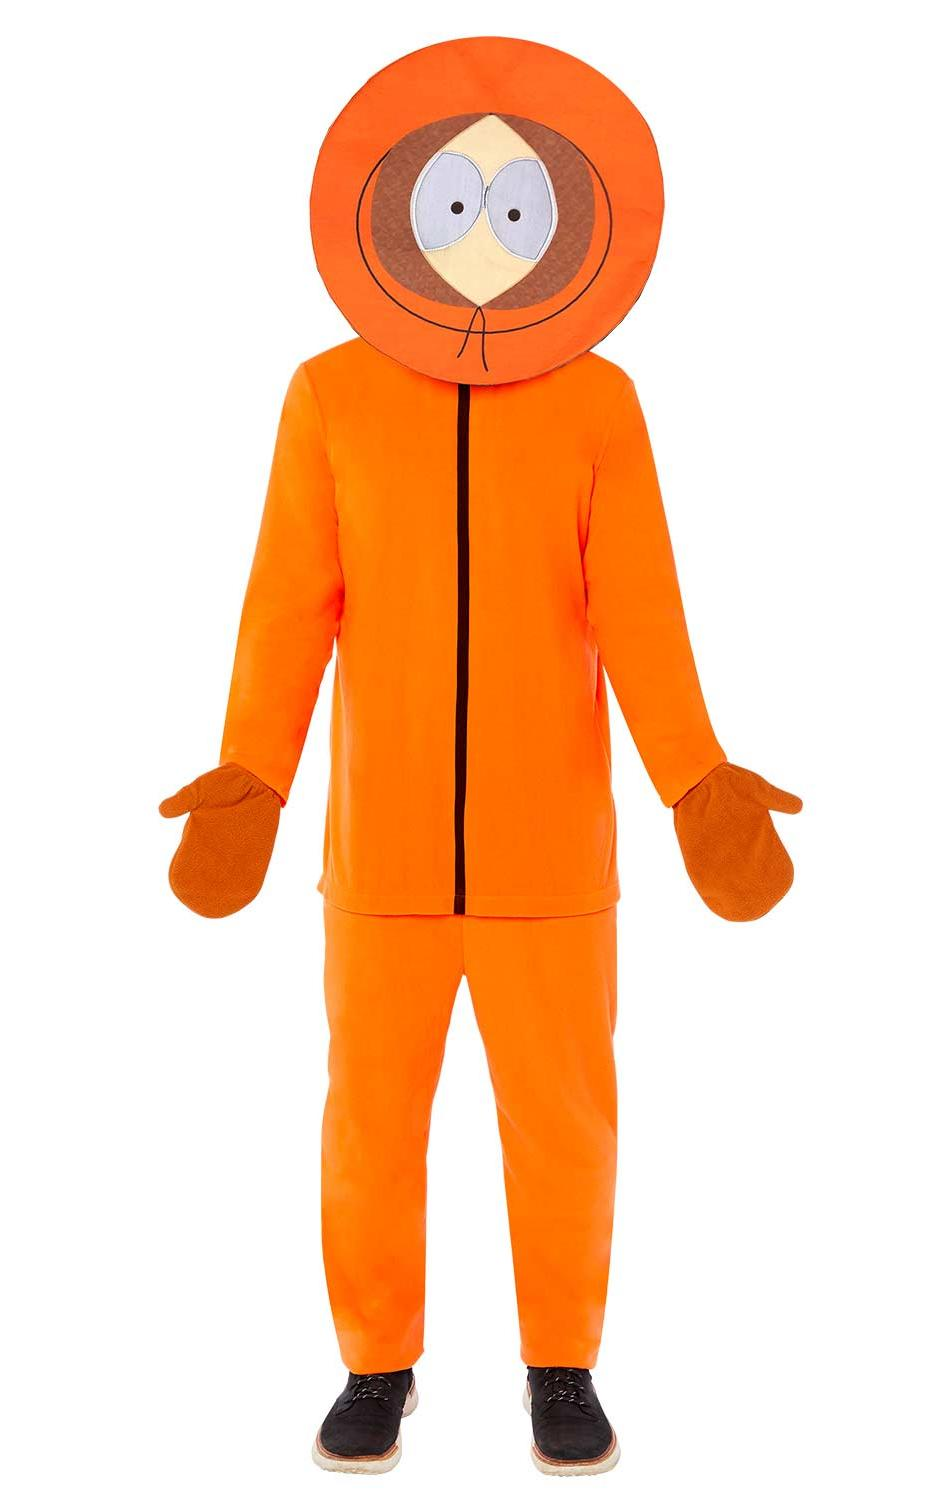 Southpark Kenny Costume